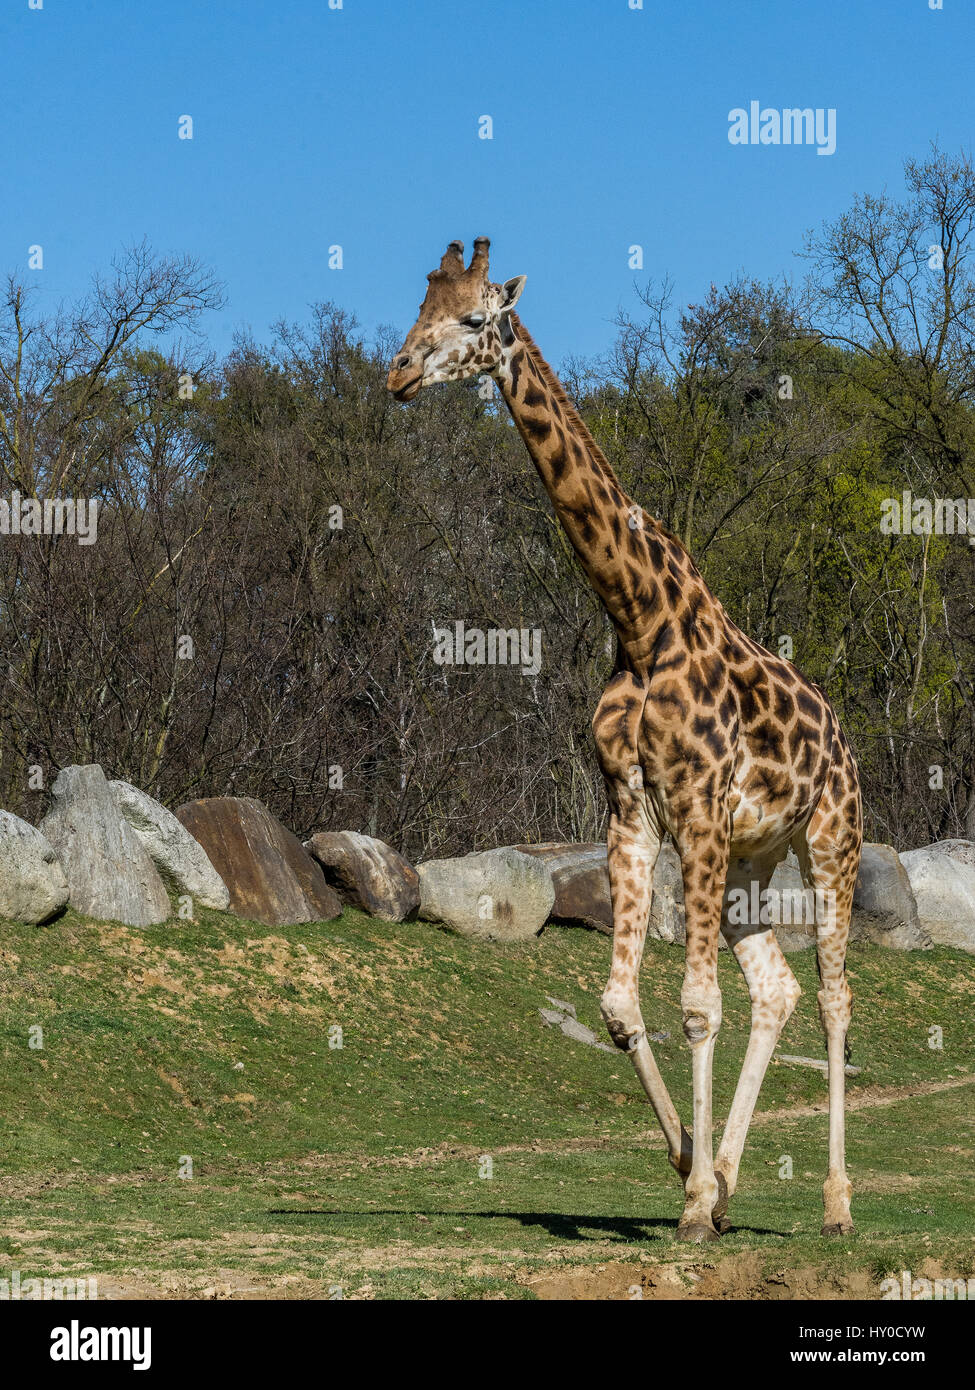 The Masai giraffe (Giraffa tippelskirchi), also spelled Maasai giraffe, also called Kilimanjaro giraffe, is the - Stock Image